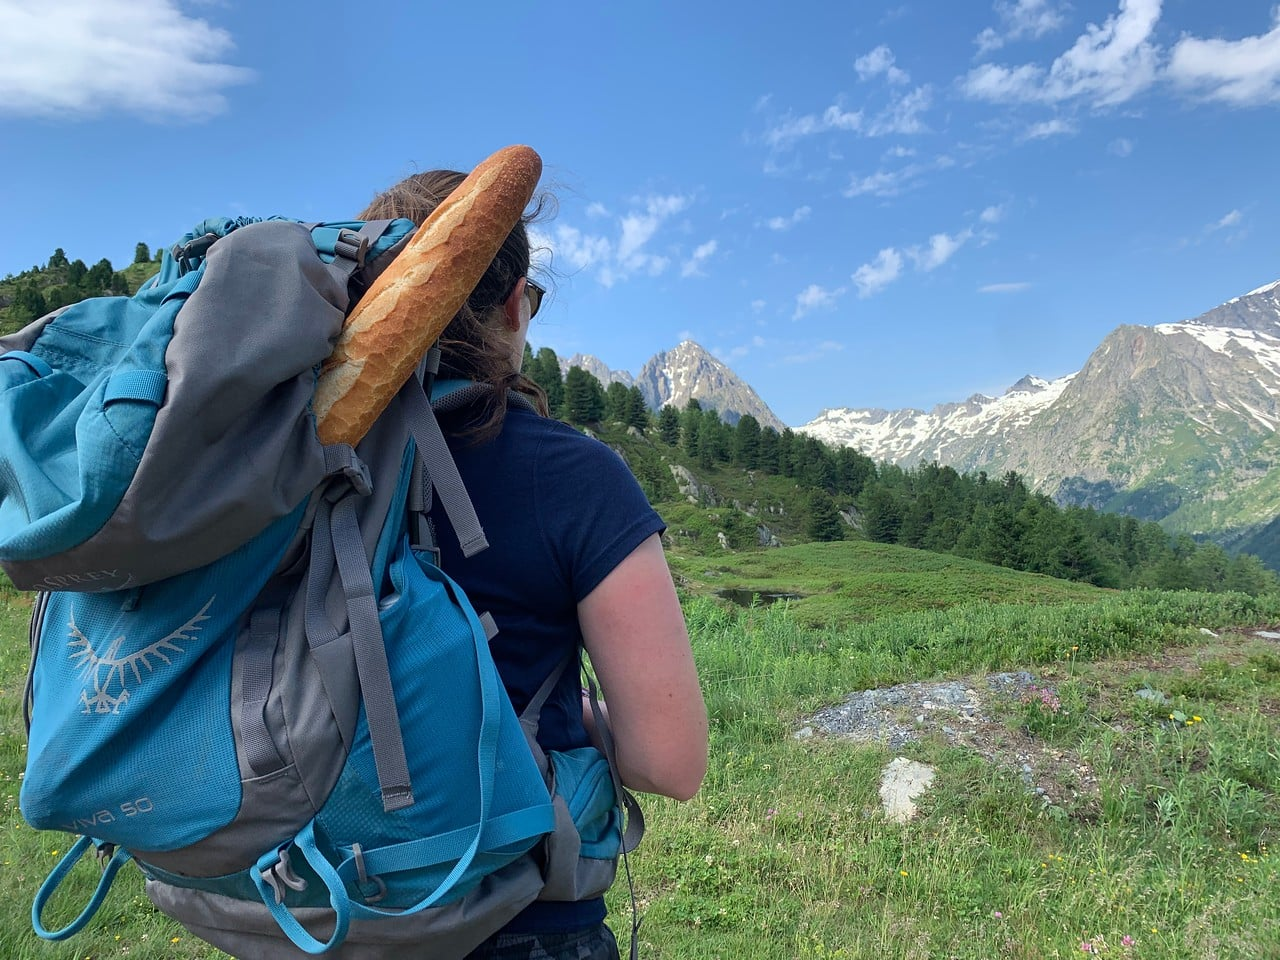 Teen well prepared for her hike into the mountains this summer